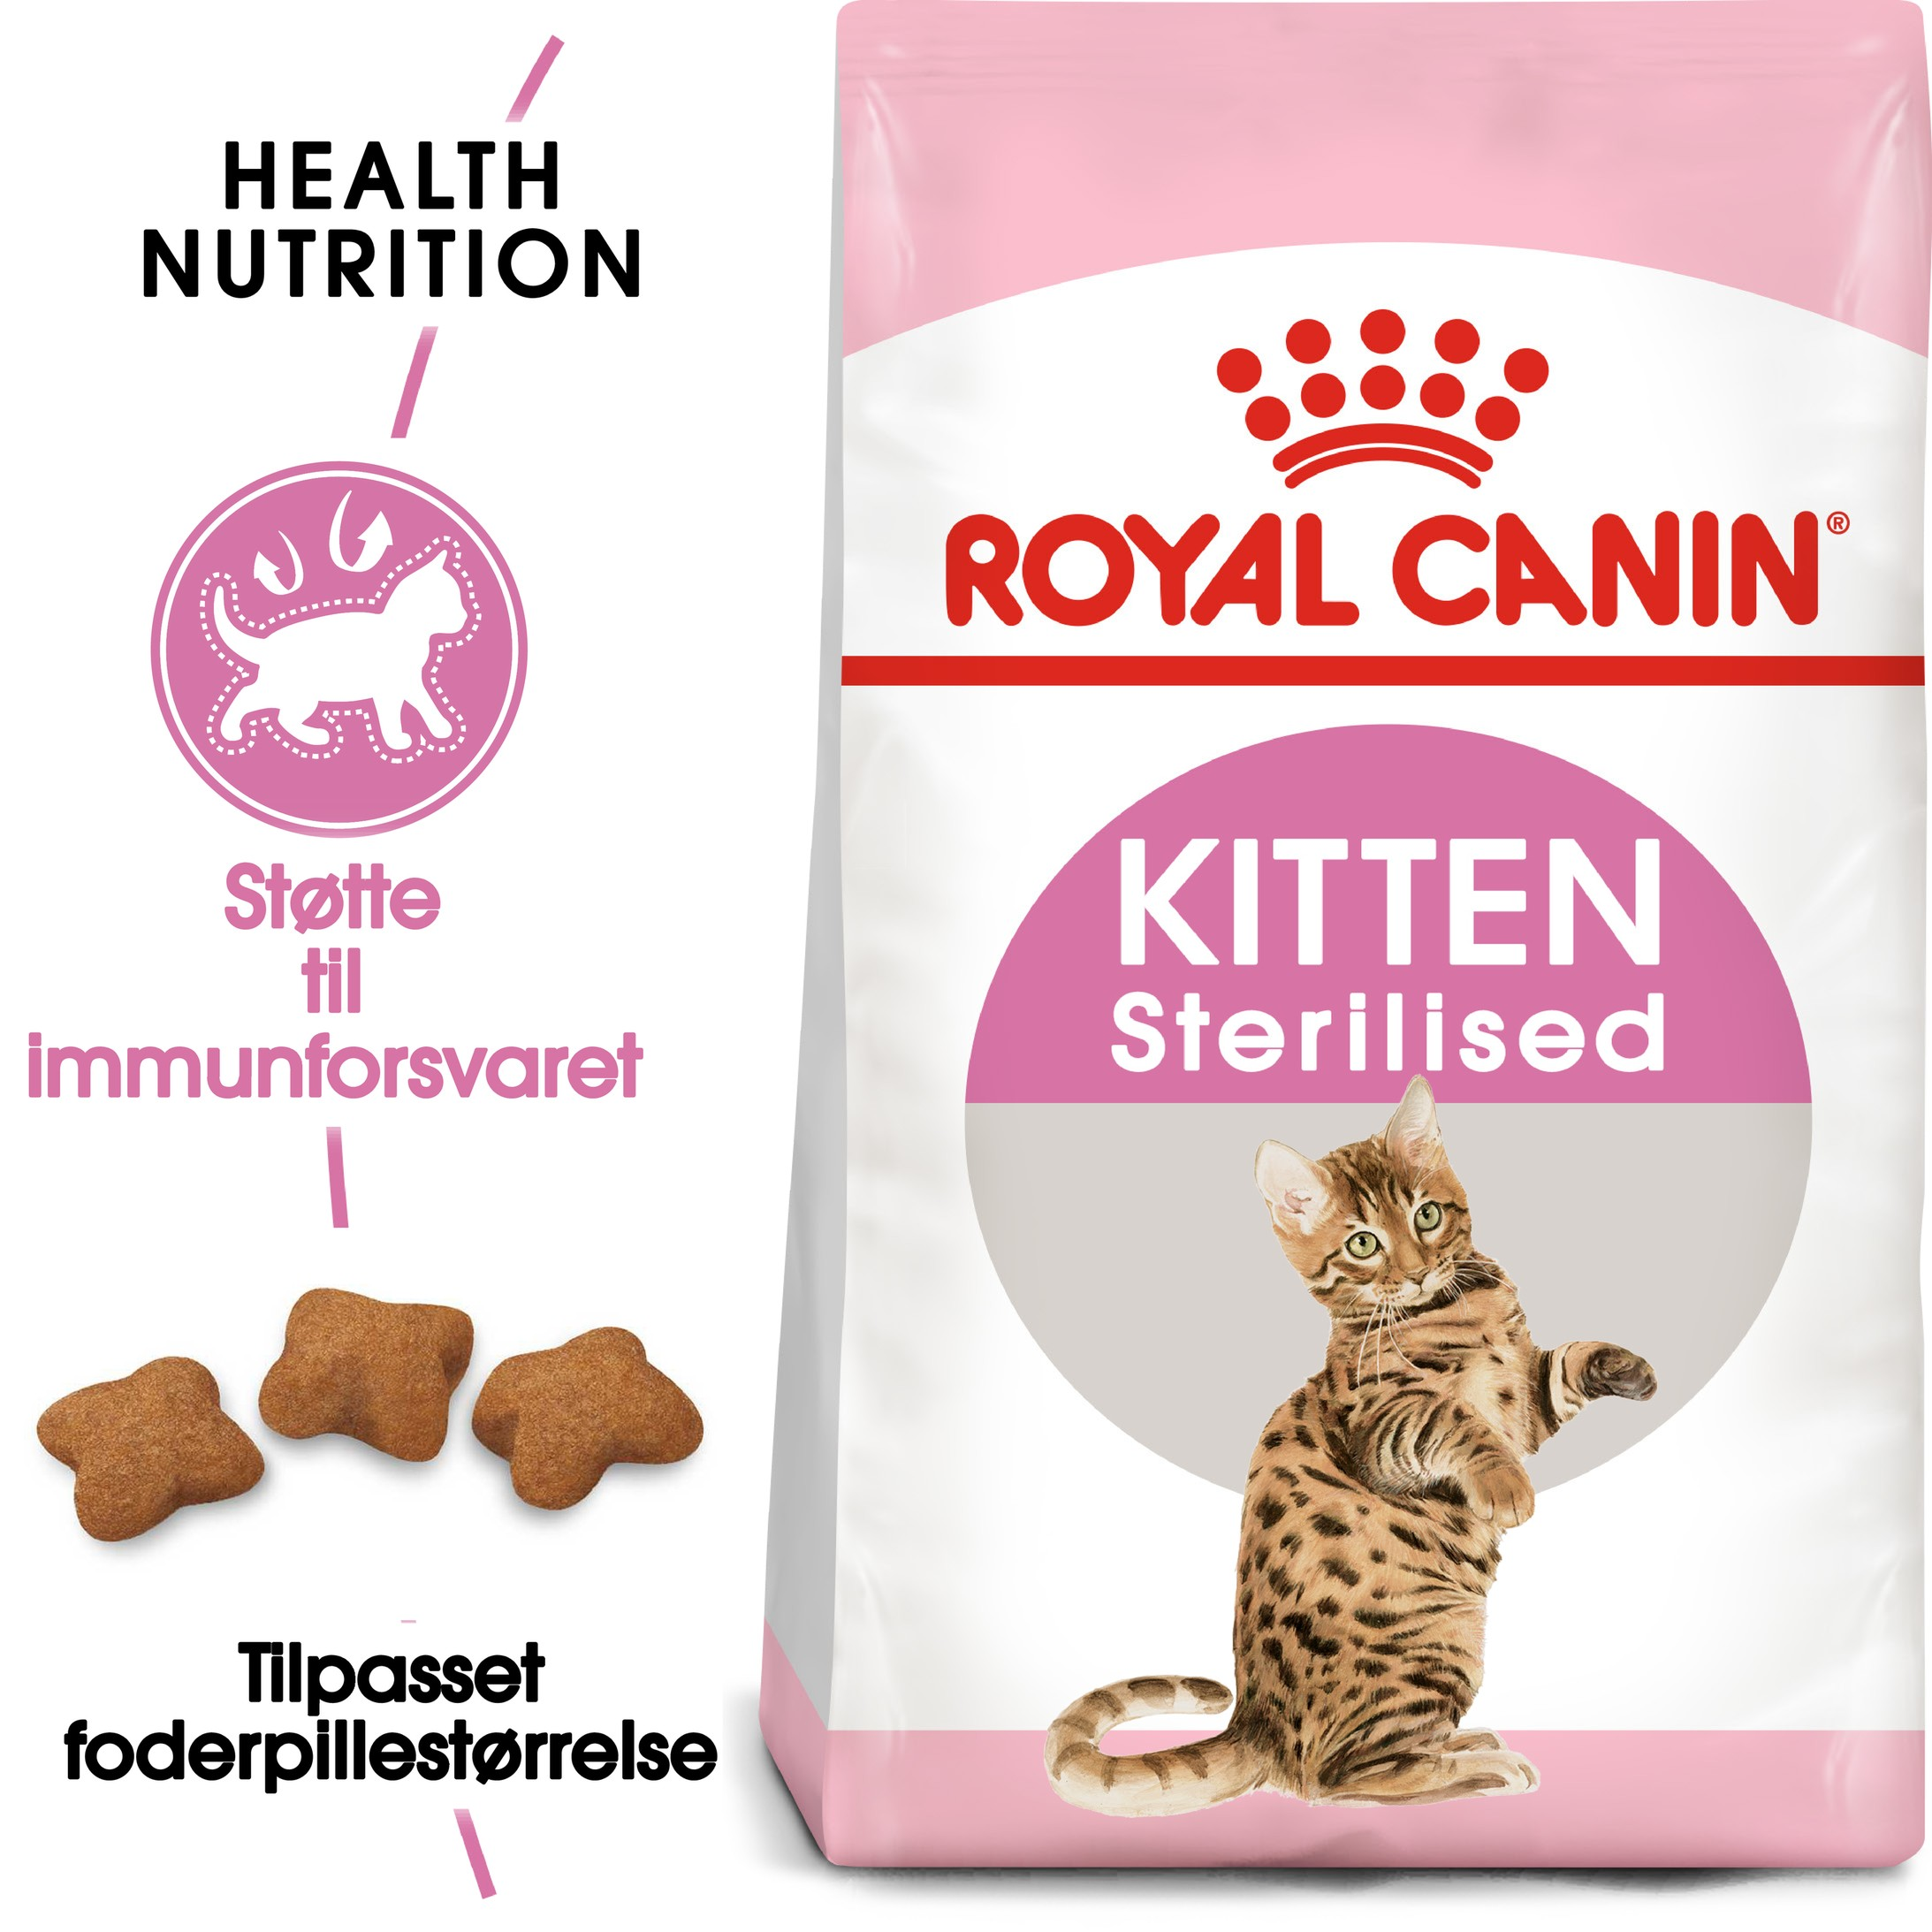 Royal Canin Kitten Sterilised kattefoder